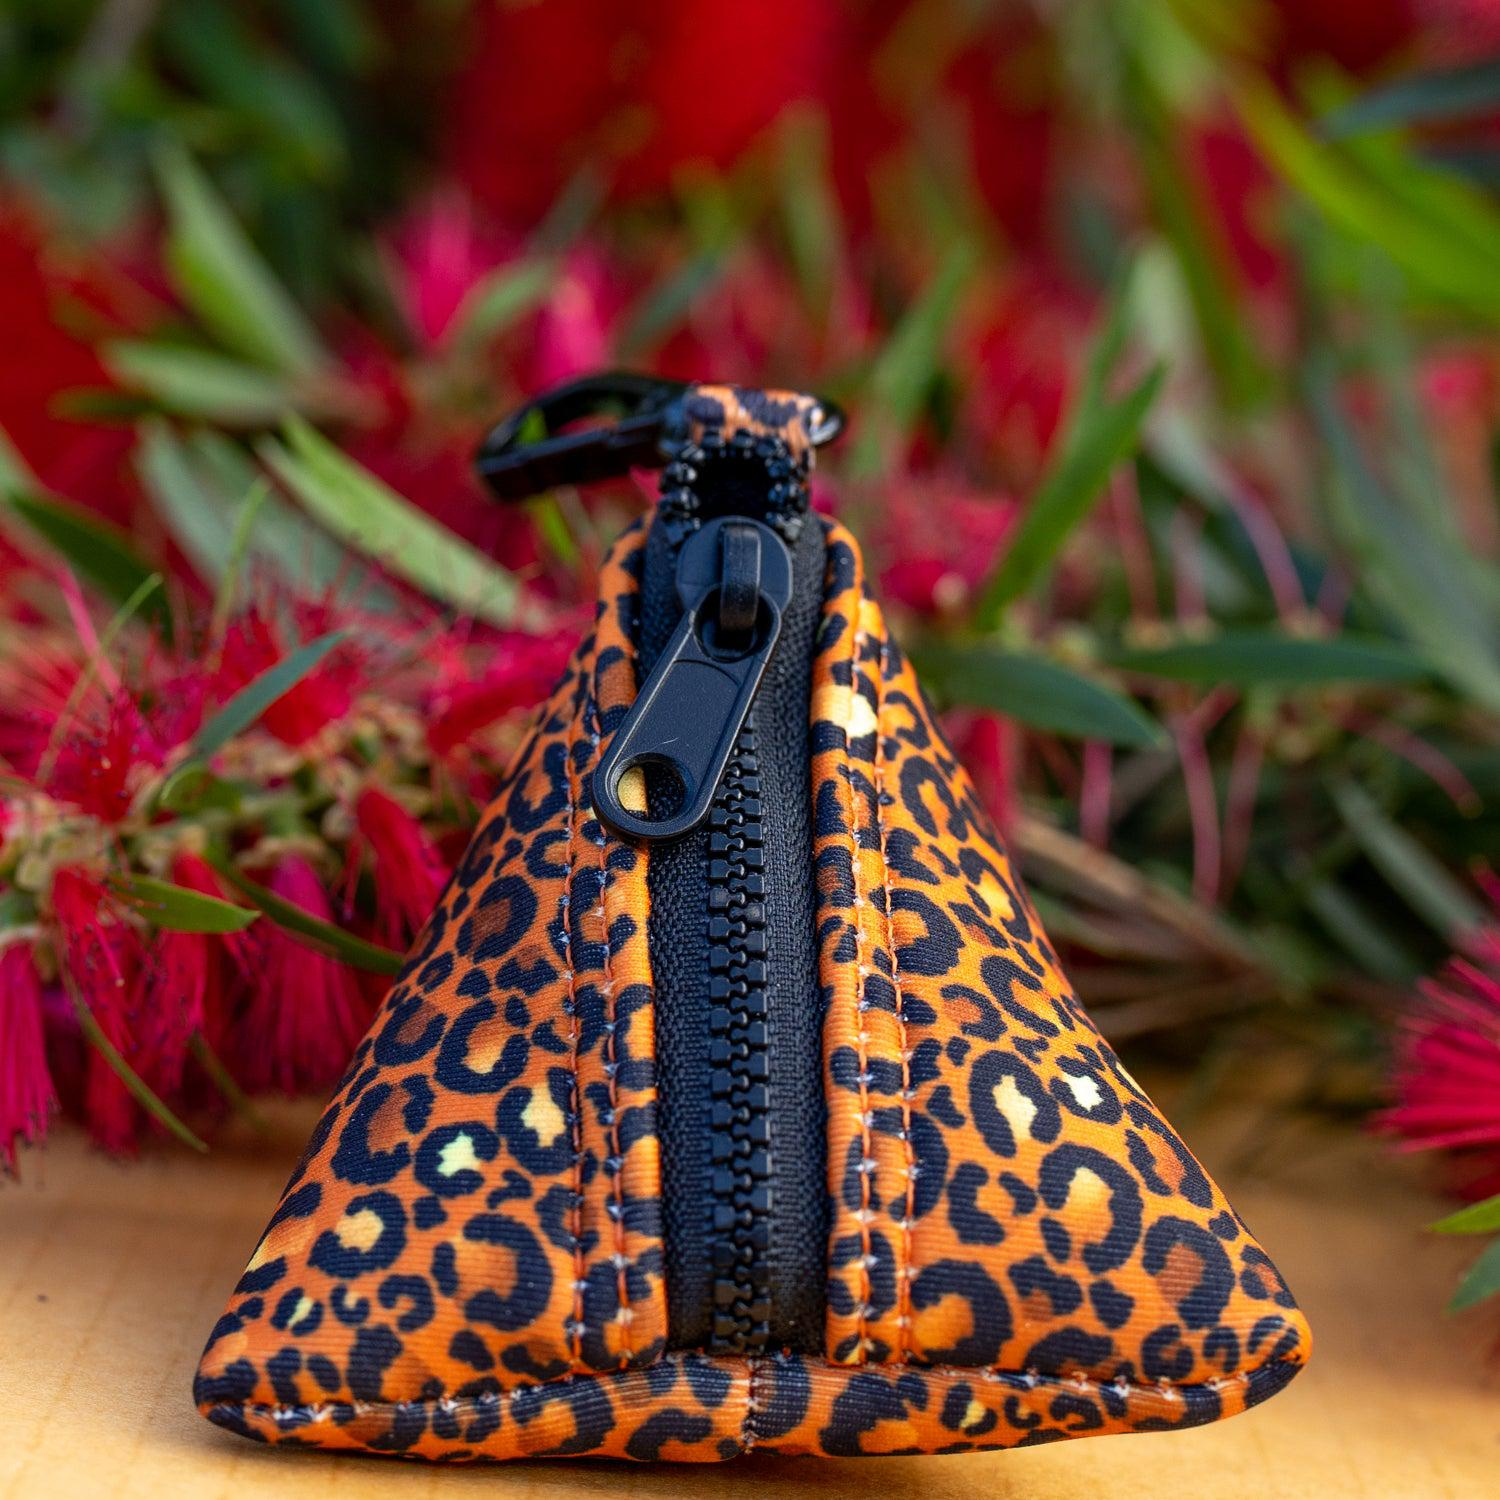 Safari - Leopard Print Pocket- For Poop Bags, Treat and/or Keys/Coins-Dizzy Dog Collars